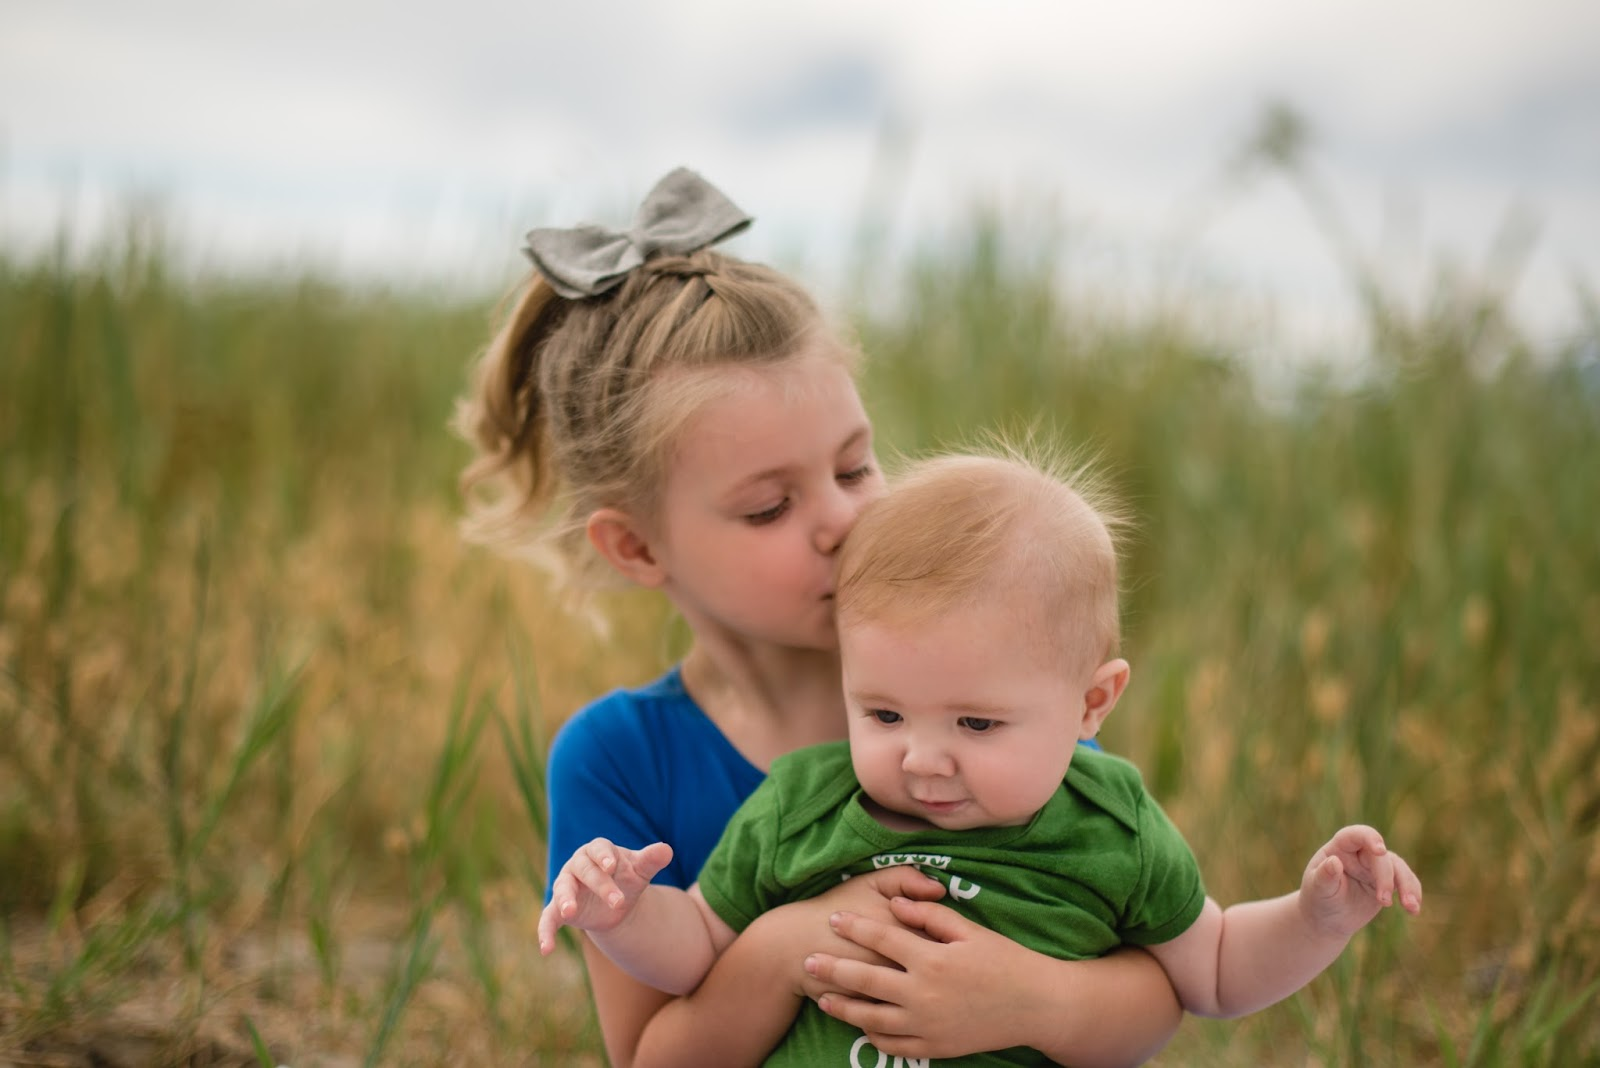 Utah Family & Child Photographer, Heather Luczak Photography